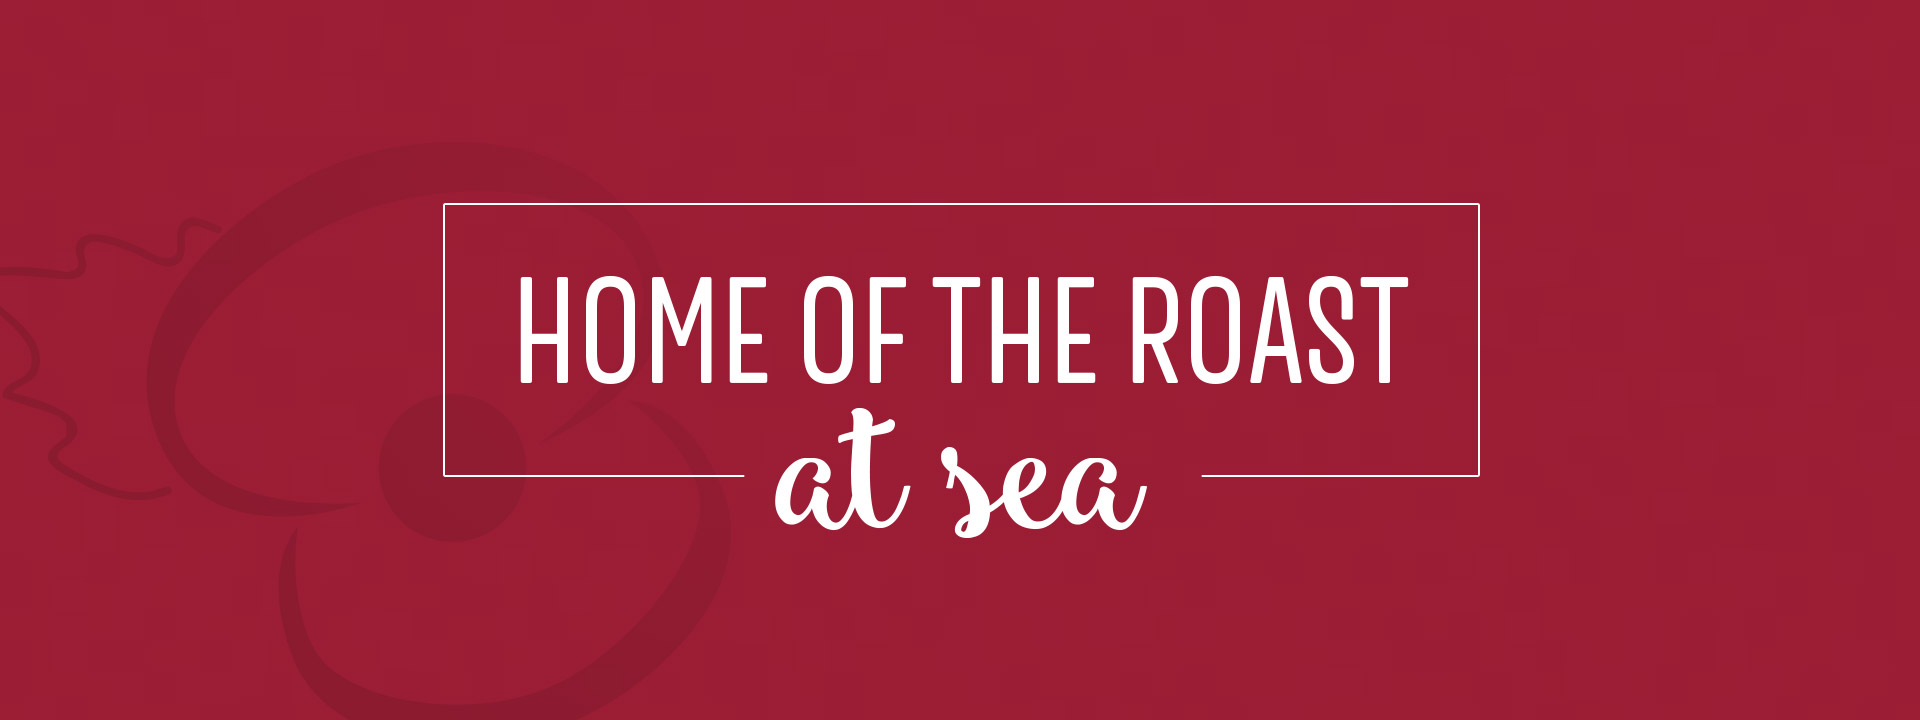 Home of the roast at sea